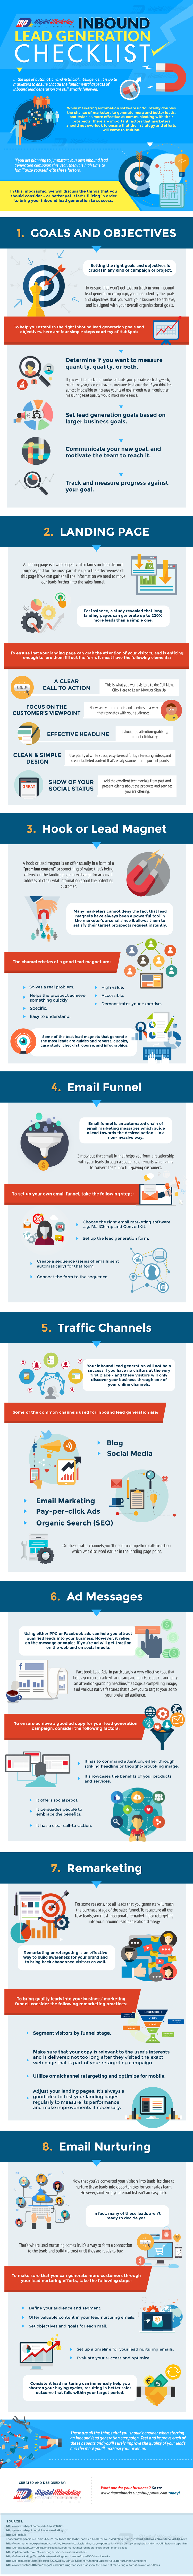 A Guide To Successfully Generating Leads - Infographic